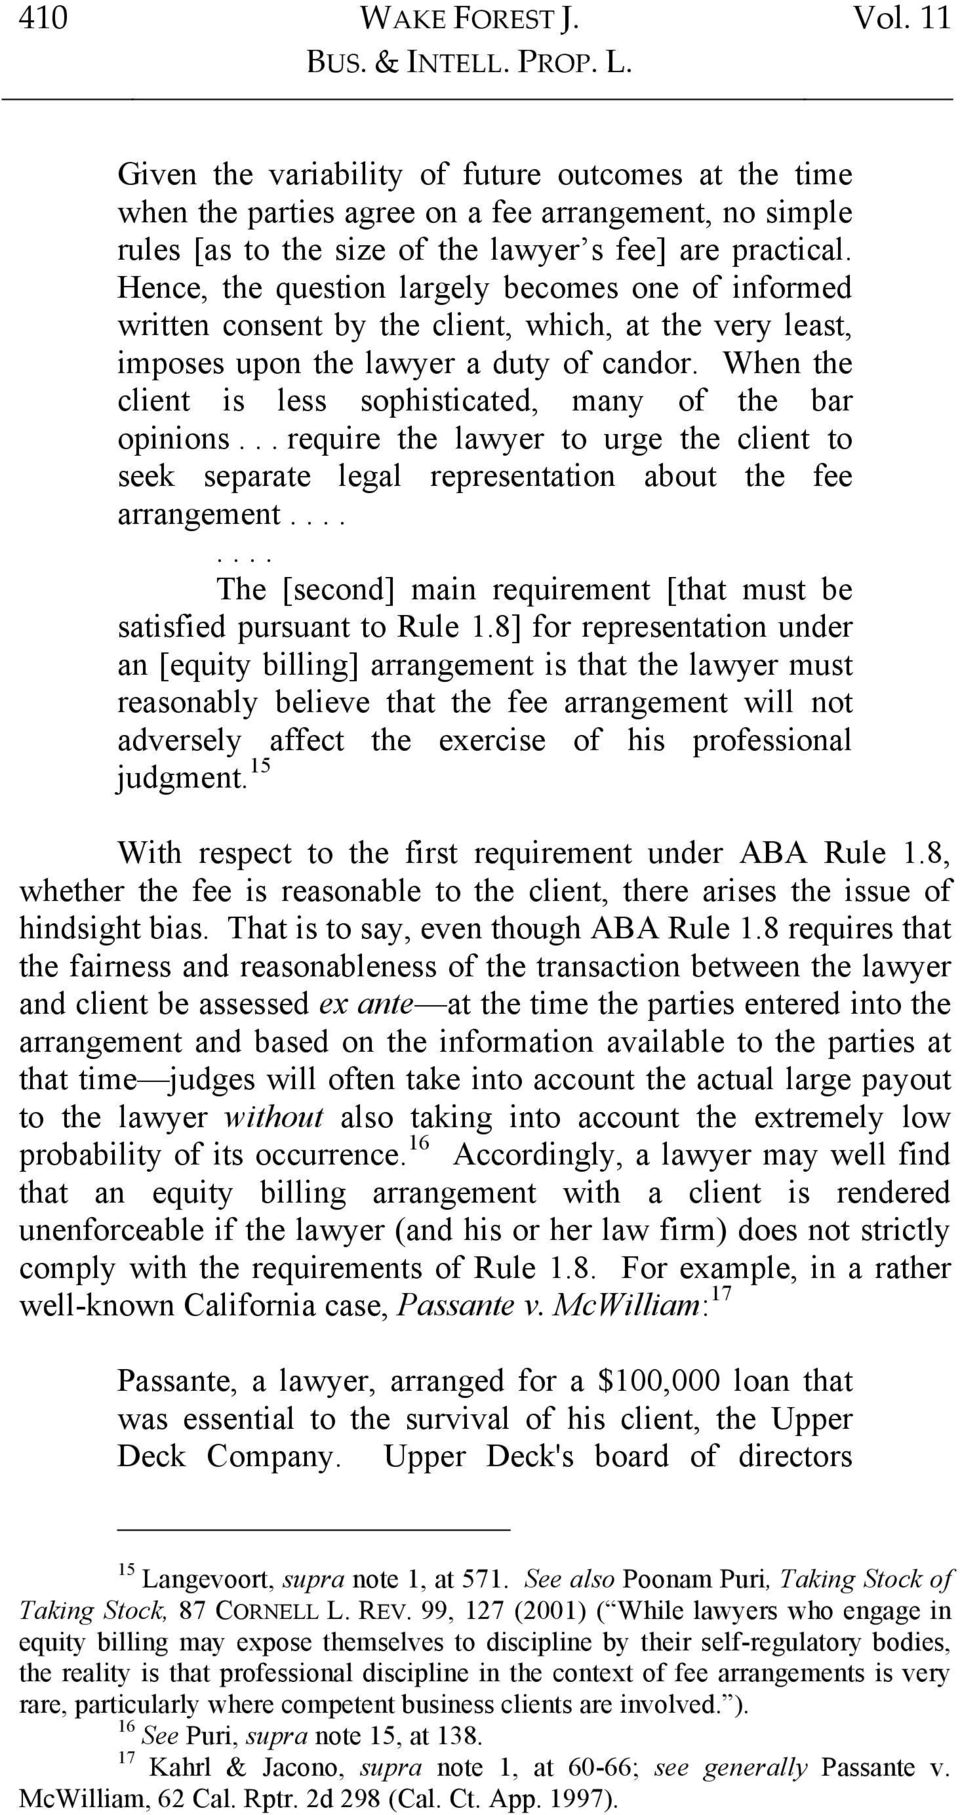 Hence, the question largely becomes one of informed written consent by the client, which, at the very least, imposes upon the lawyer a duty of candor.